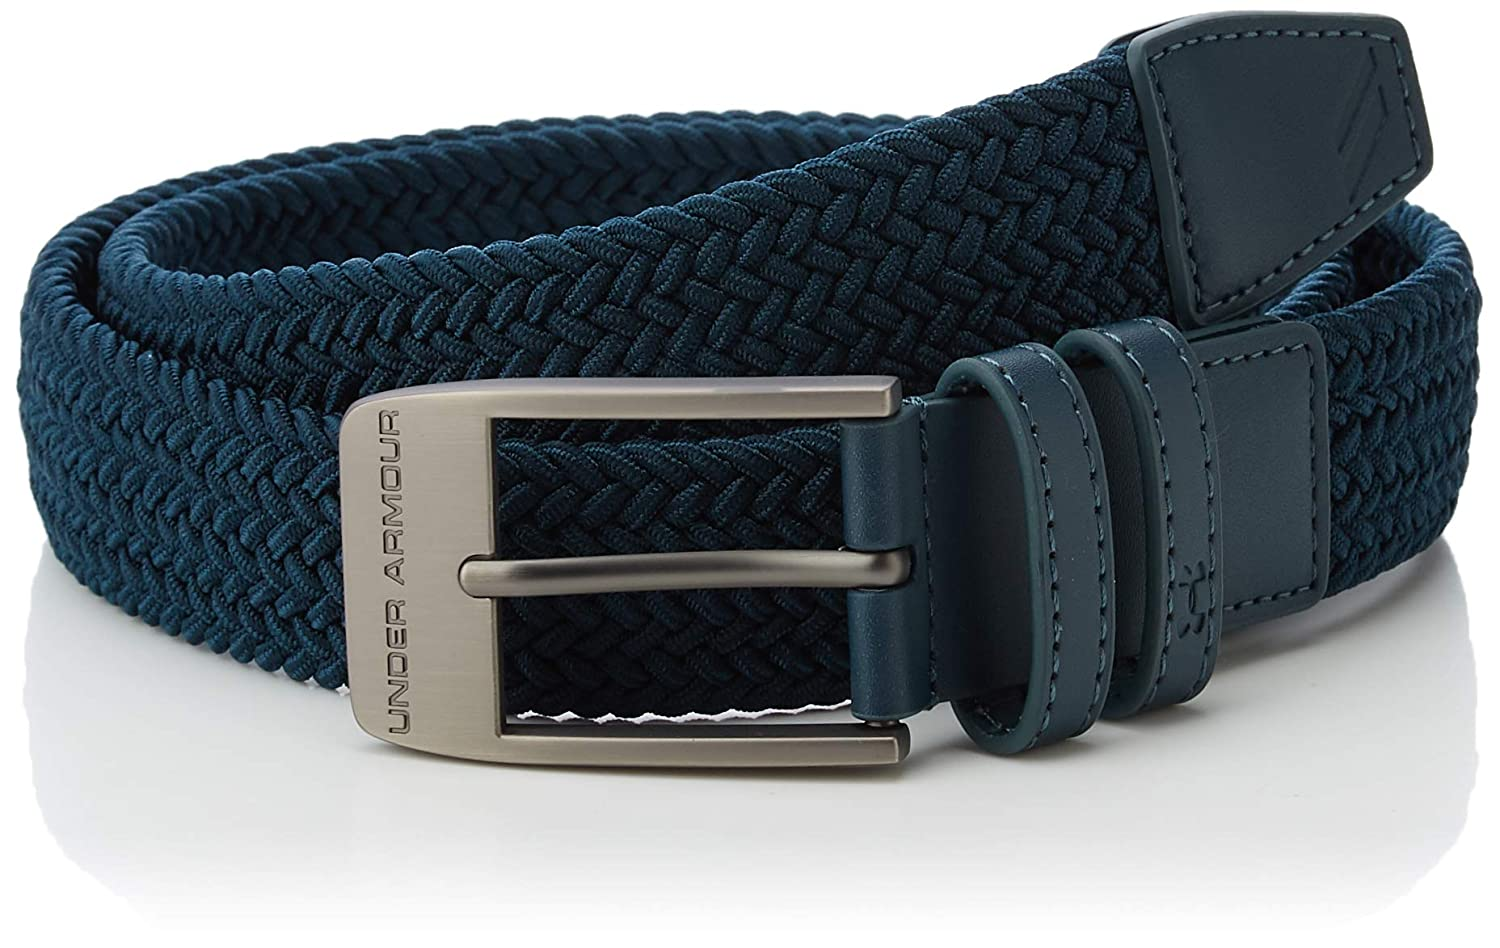 6d853ba62c Under Armour Men's Braided Belt 2.0